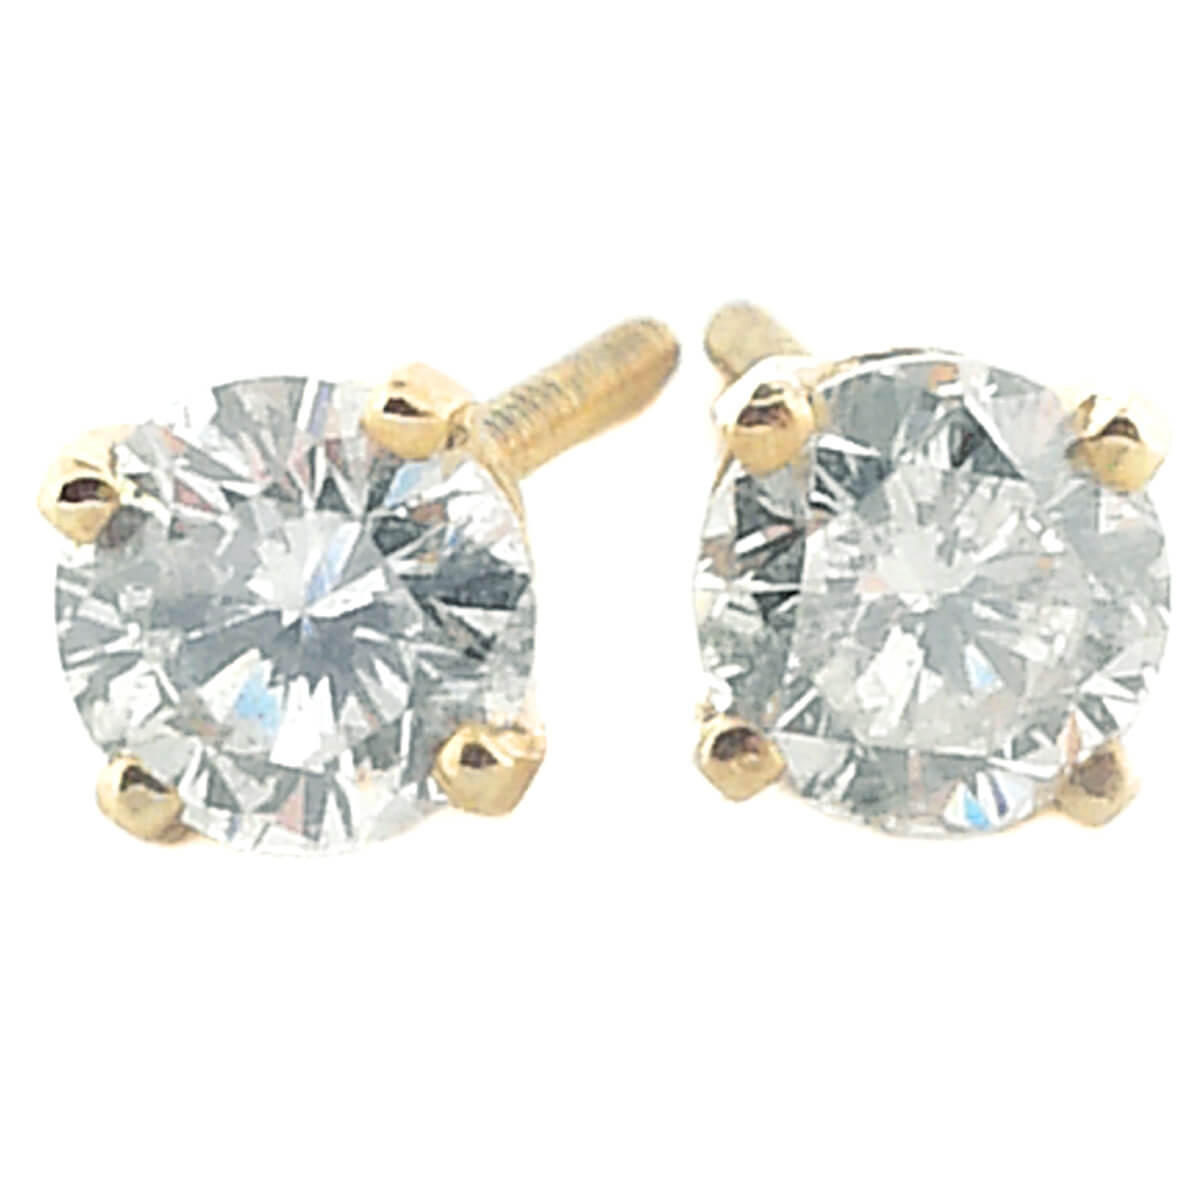 14K Yellow Gold 0.40ct Diamond Stud Earrings